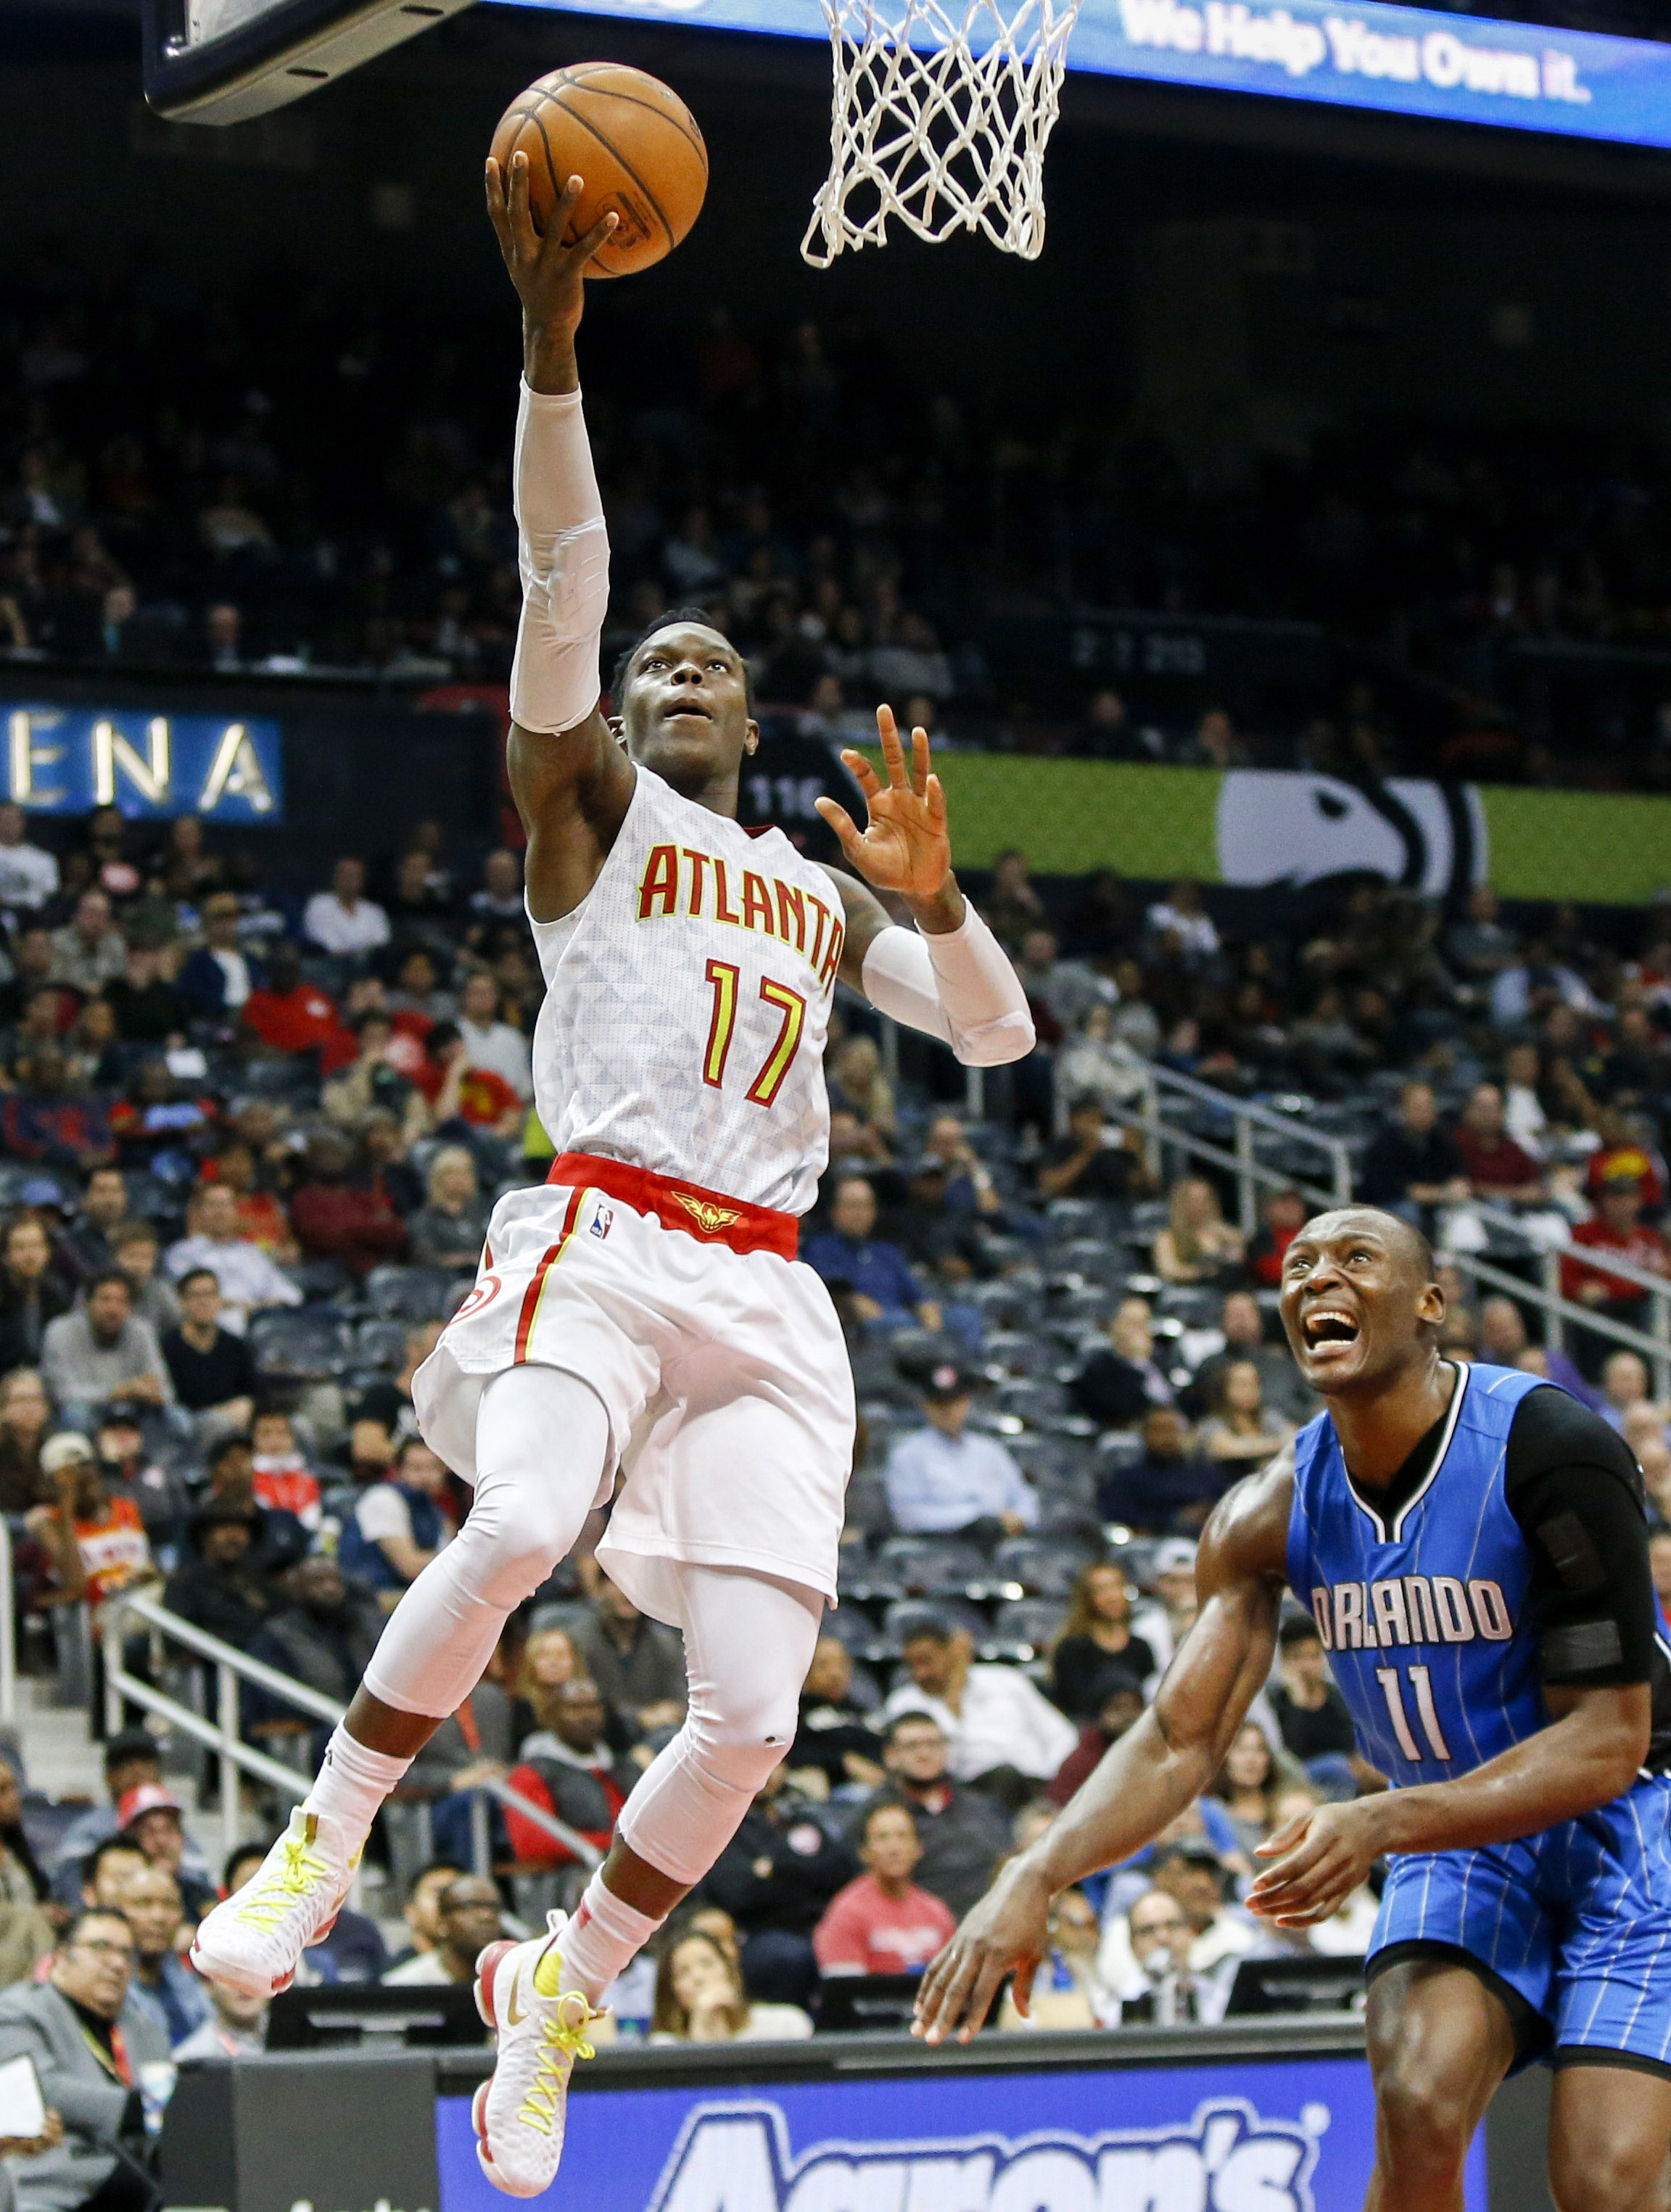 NBA: Orlando Magic at Atlanta Hawks